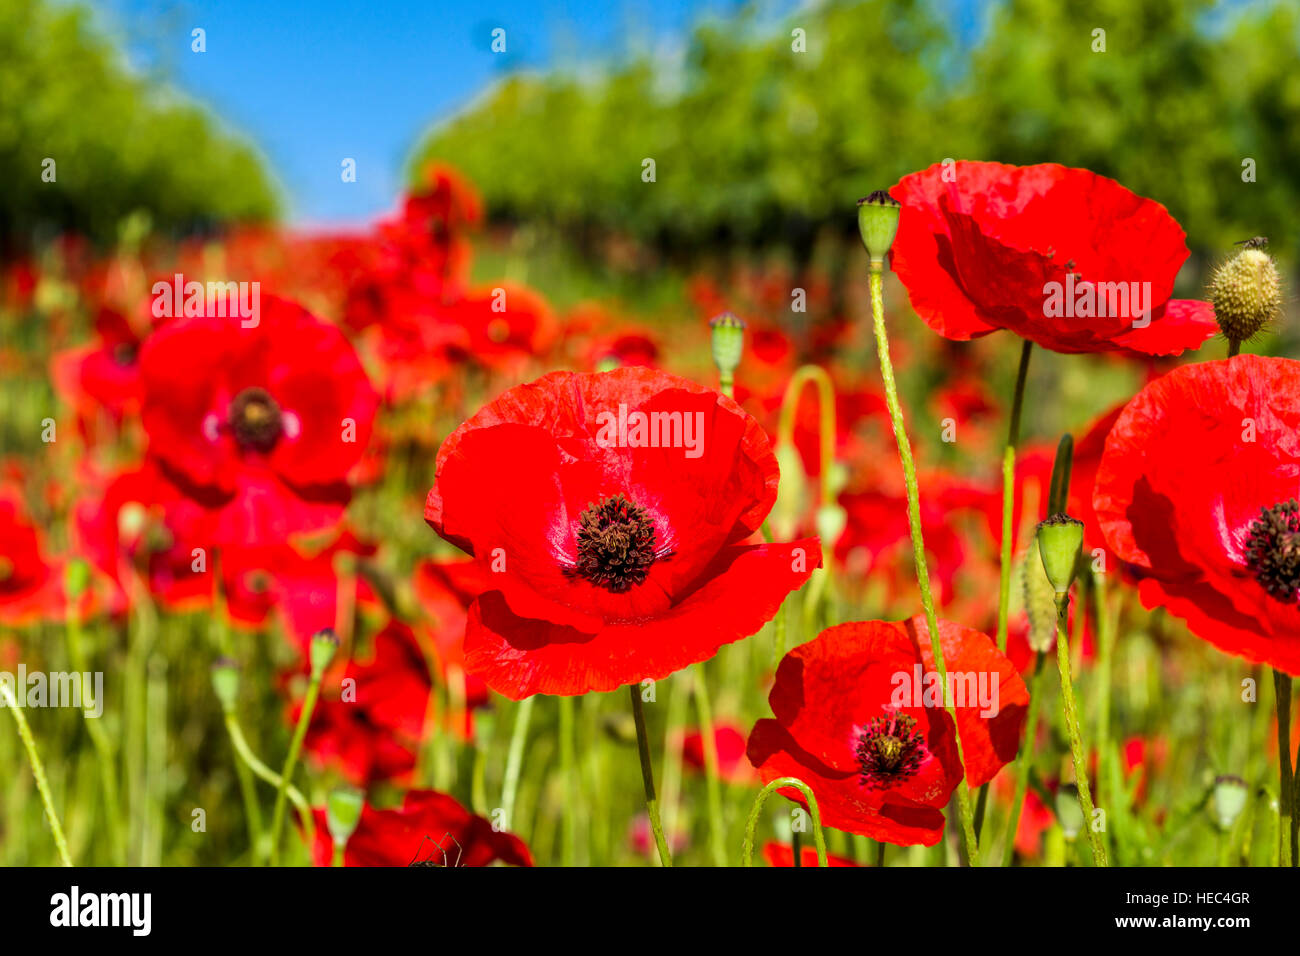 Close up of poppies blossoms - Stock Image